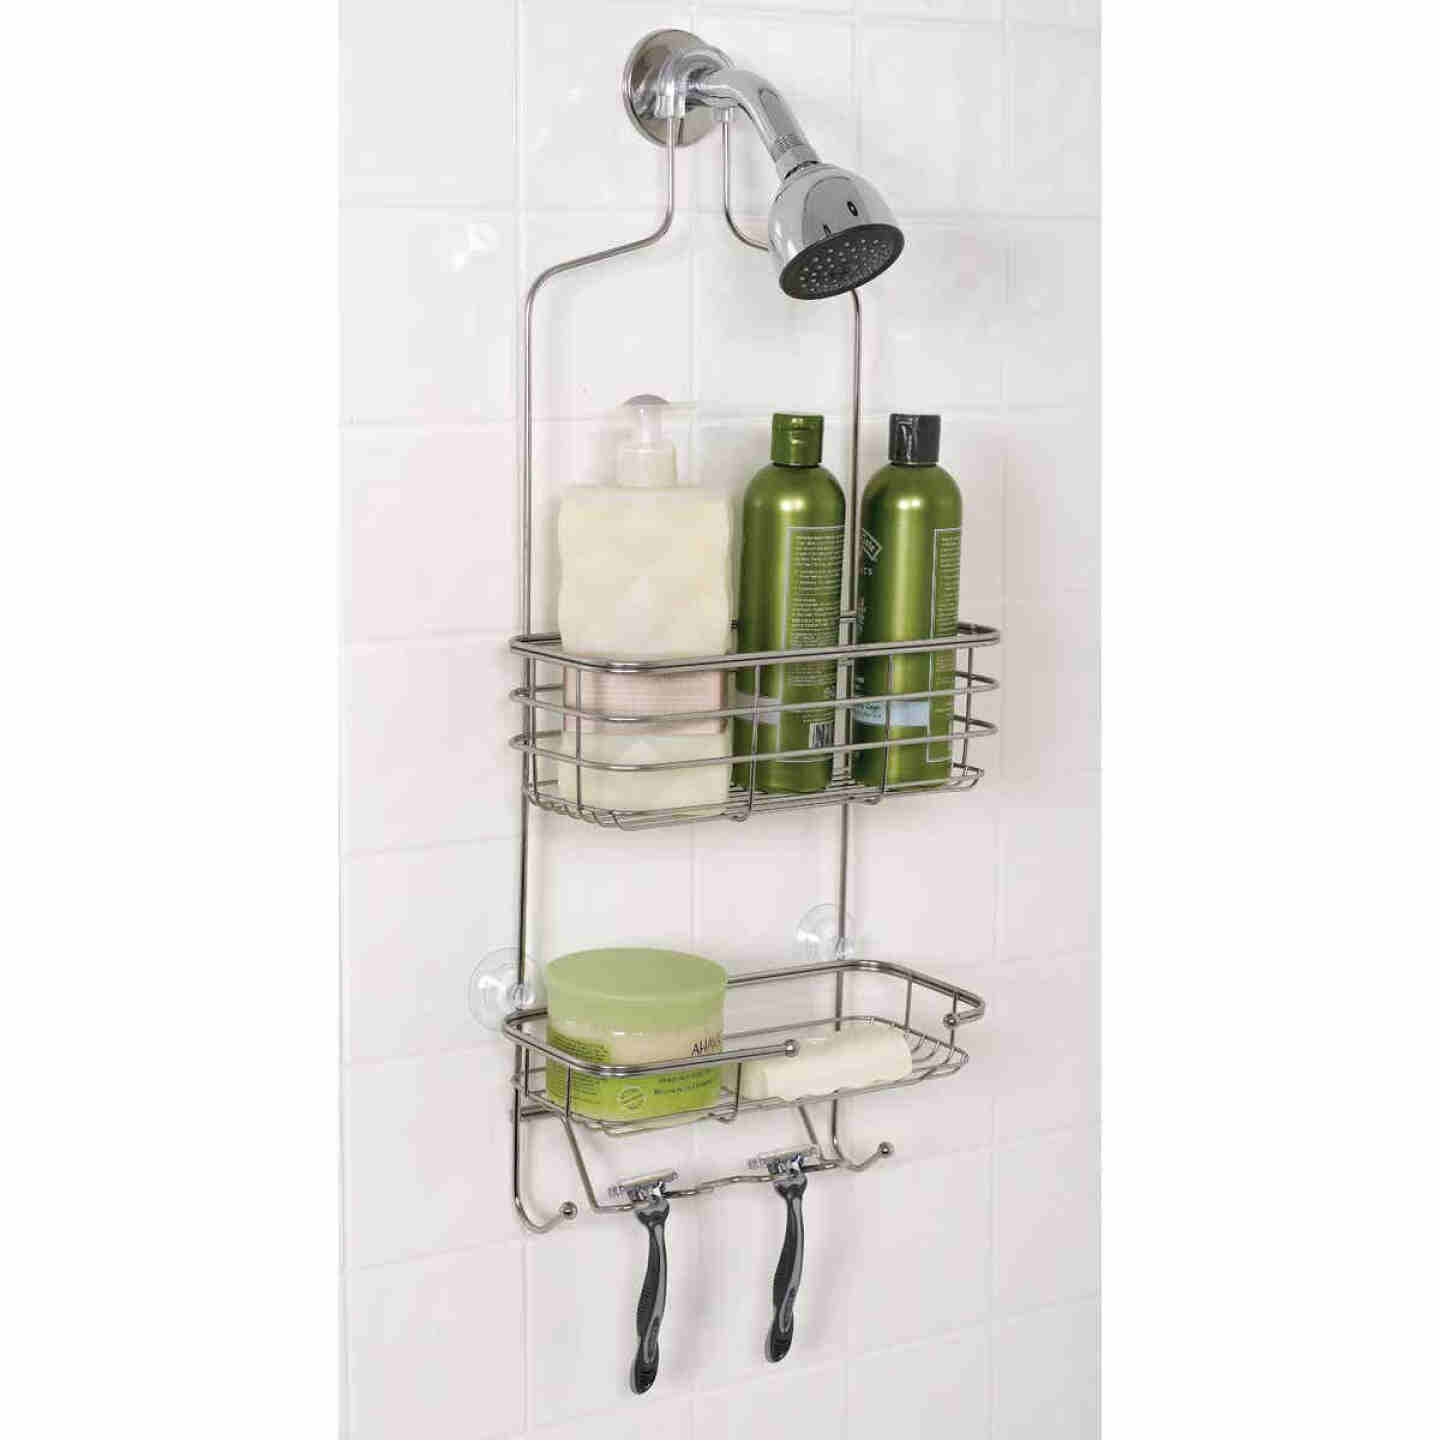 Zenith Zenna Home Stainless Steel 10-1/4 In. x 24-3/4 In. Shower Caddy Image 1